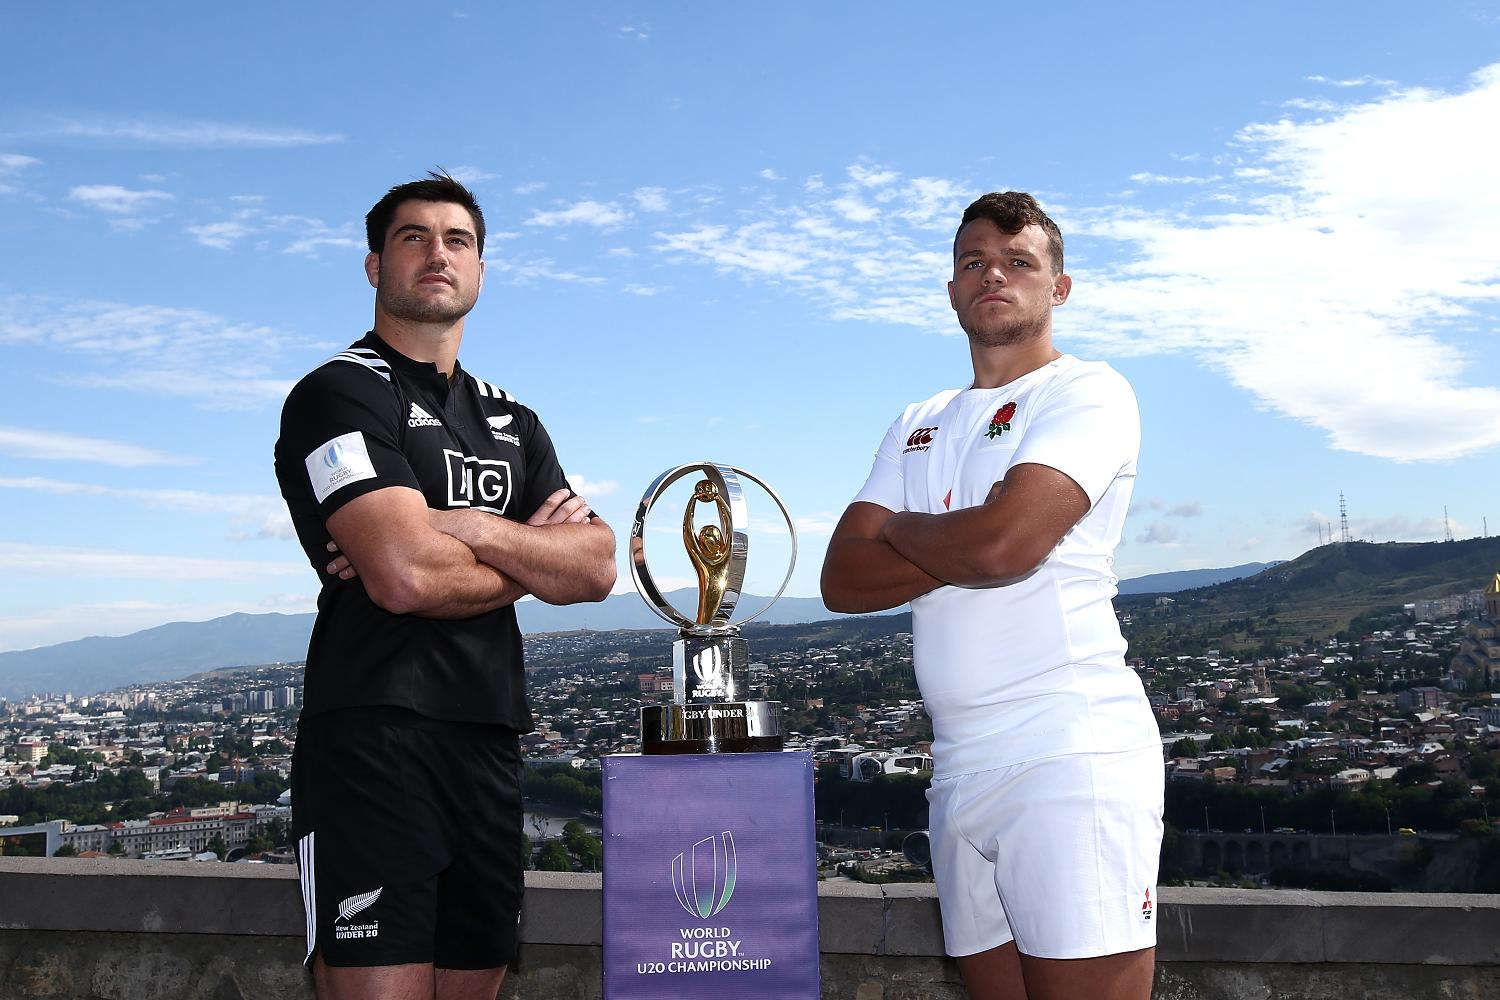 World Rugby U20 Championship 2017: Final captains' photocall